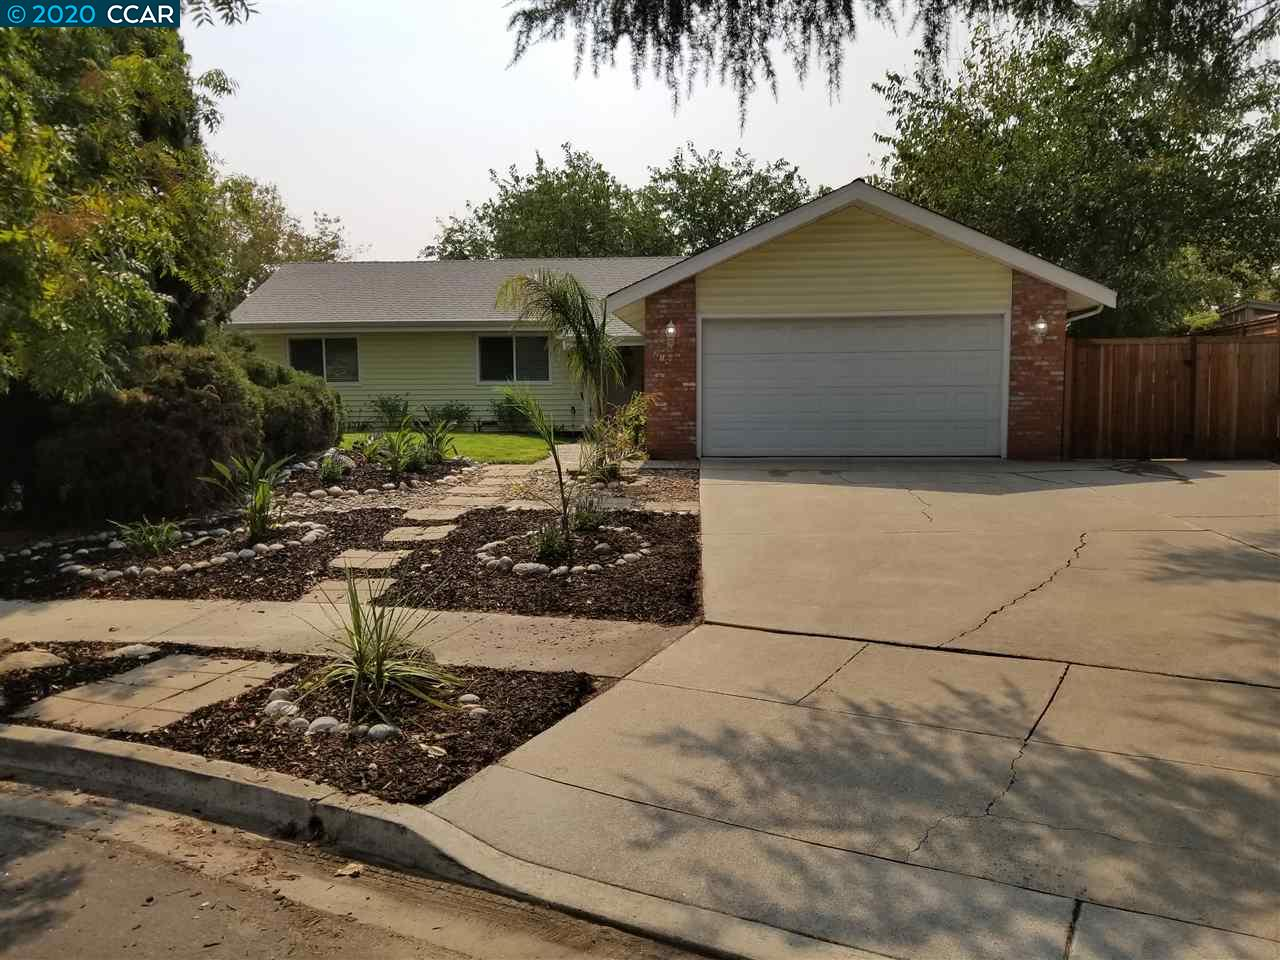 216 Sherwood Dr, BRENTWOOD, CA 94513